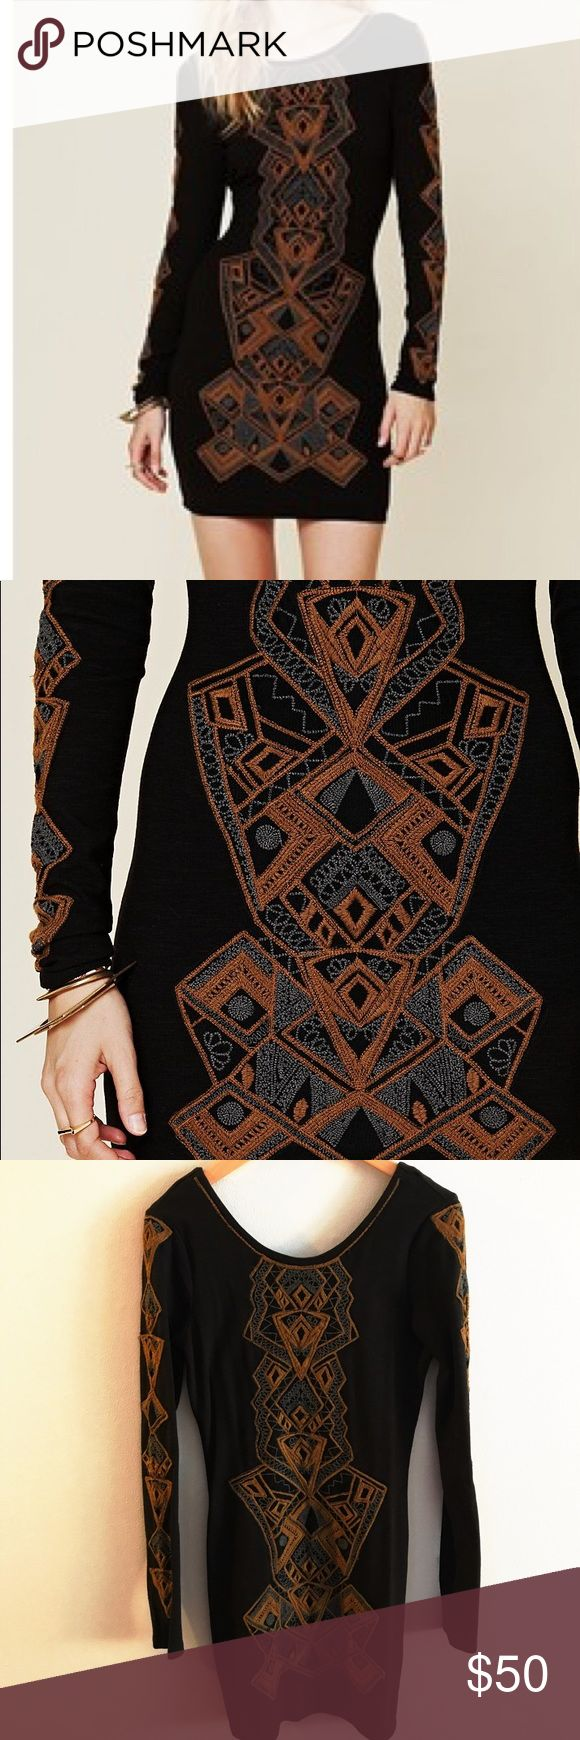 Free People black Aztec bodycon dress Cutest little black long sleeved dress.  Basically new condition. Only worn once. Aztec embroidery on front and sleeves Low open back Free people Size S - bodycon, and thick fabric to help suck it all in Free People Dresses Long Sleeve